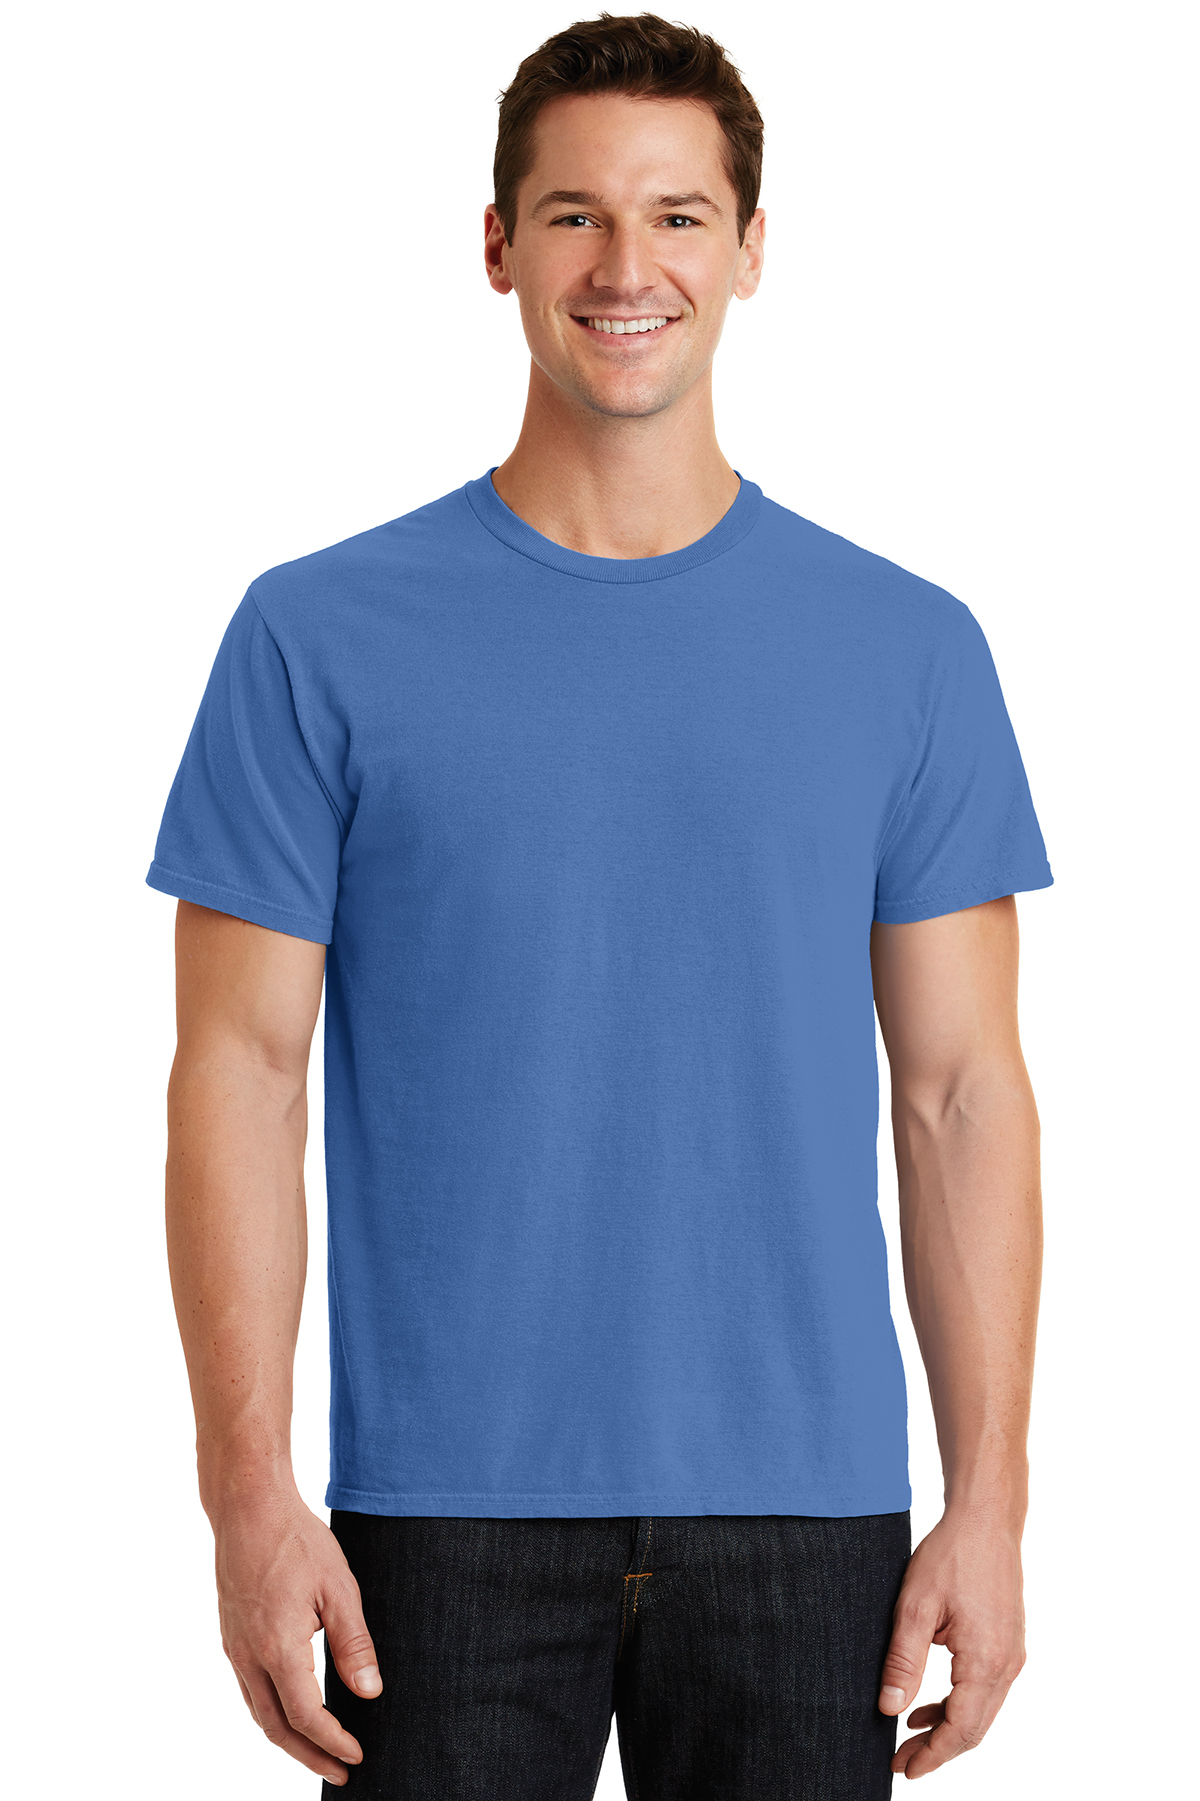 Port Company Pigment Dyed Tee 100 Cotton T Shirts Sanmar